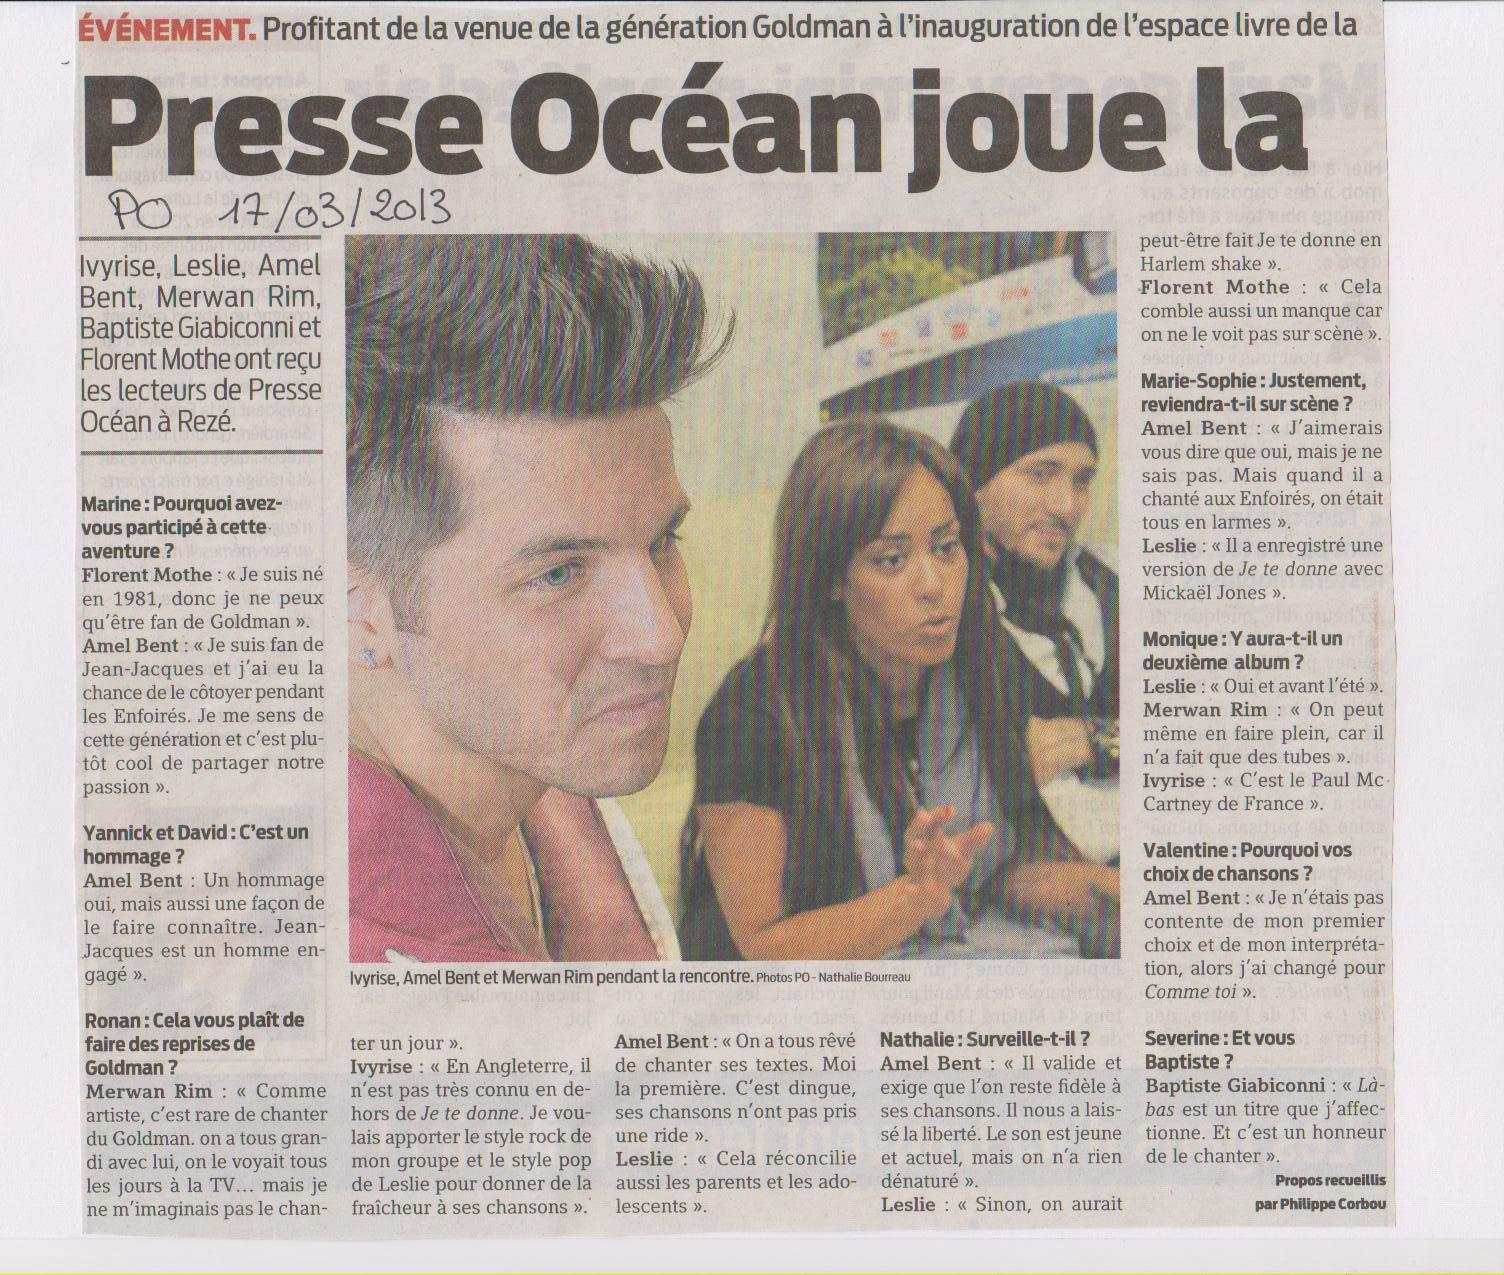 17-03-2013 PRESSE OCEAN INTERVIEW GENERATION GOLDMAN